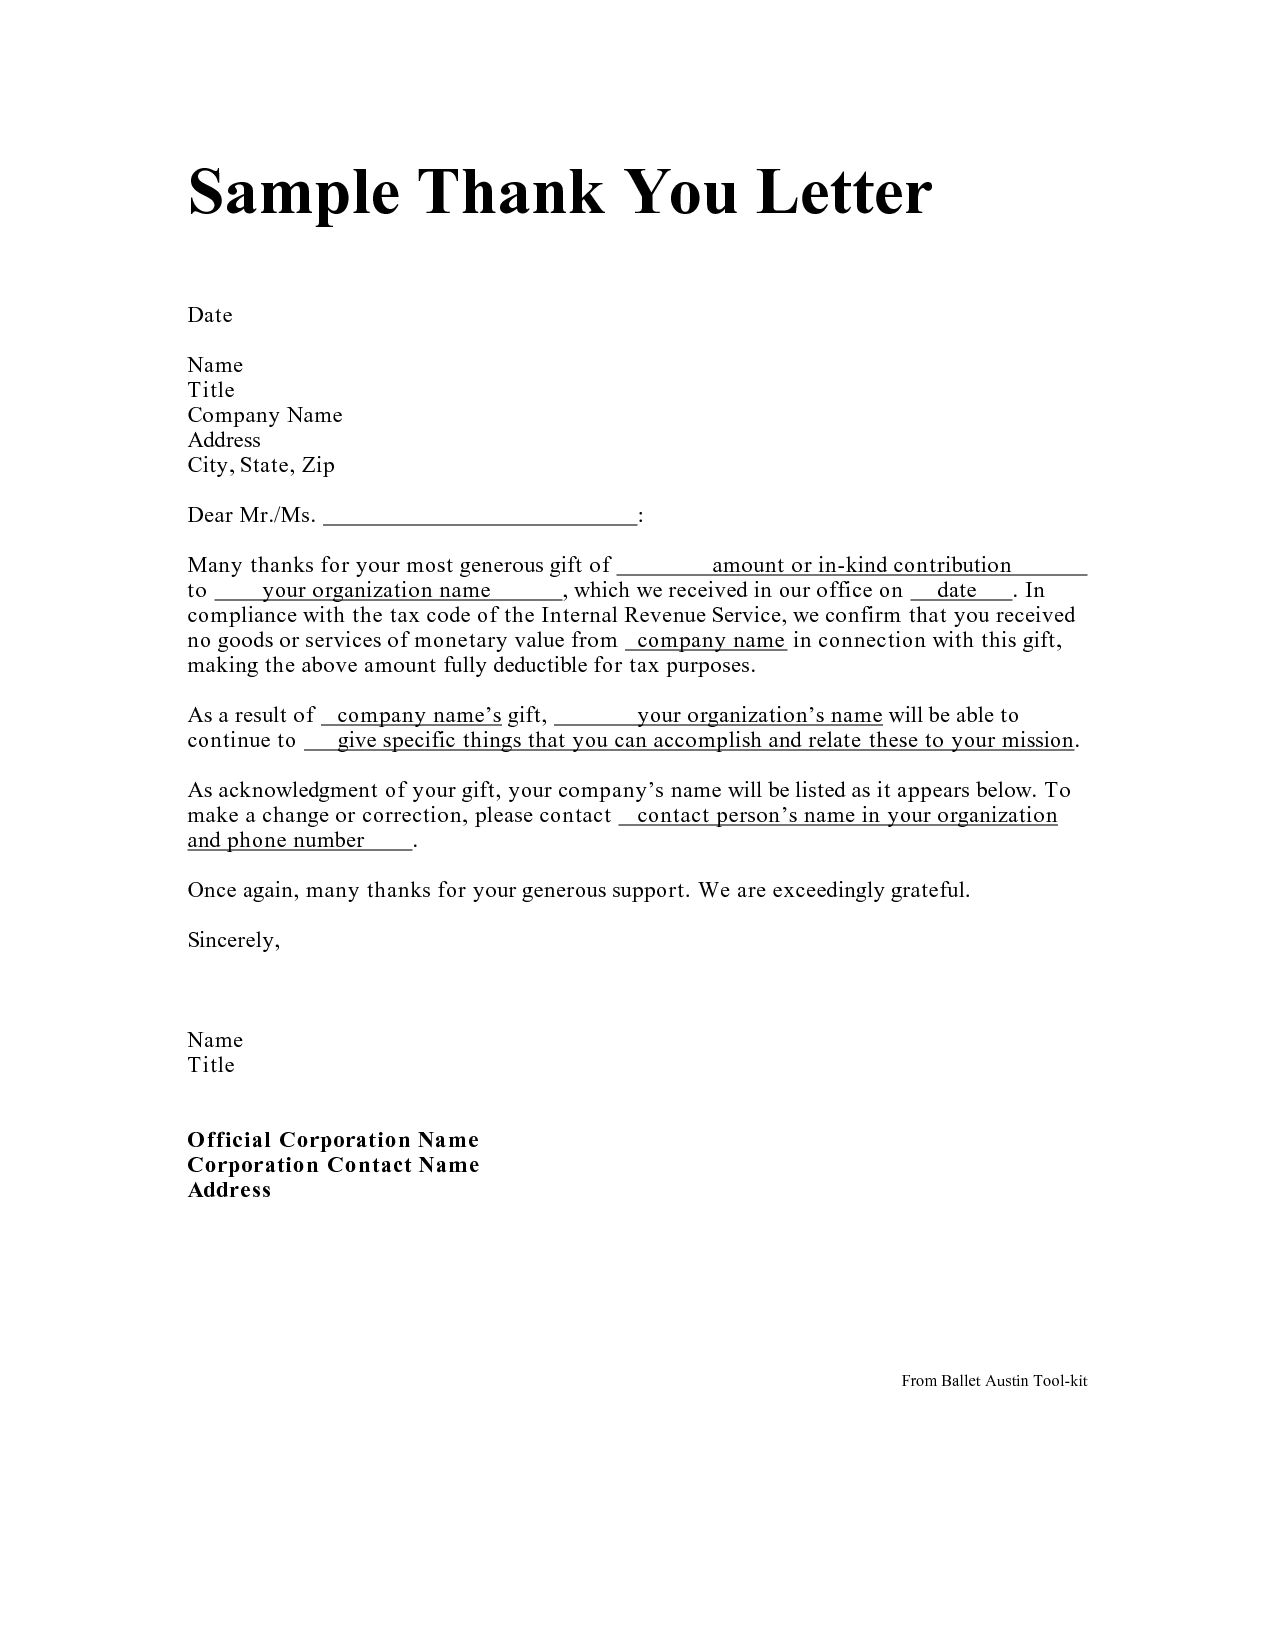 Superieur Personal Thank You Letter   Personal Thank You Letter Samples, Writing Thank  You Notes,